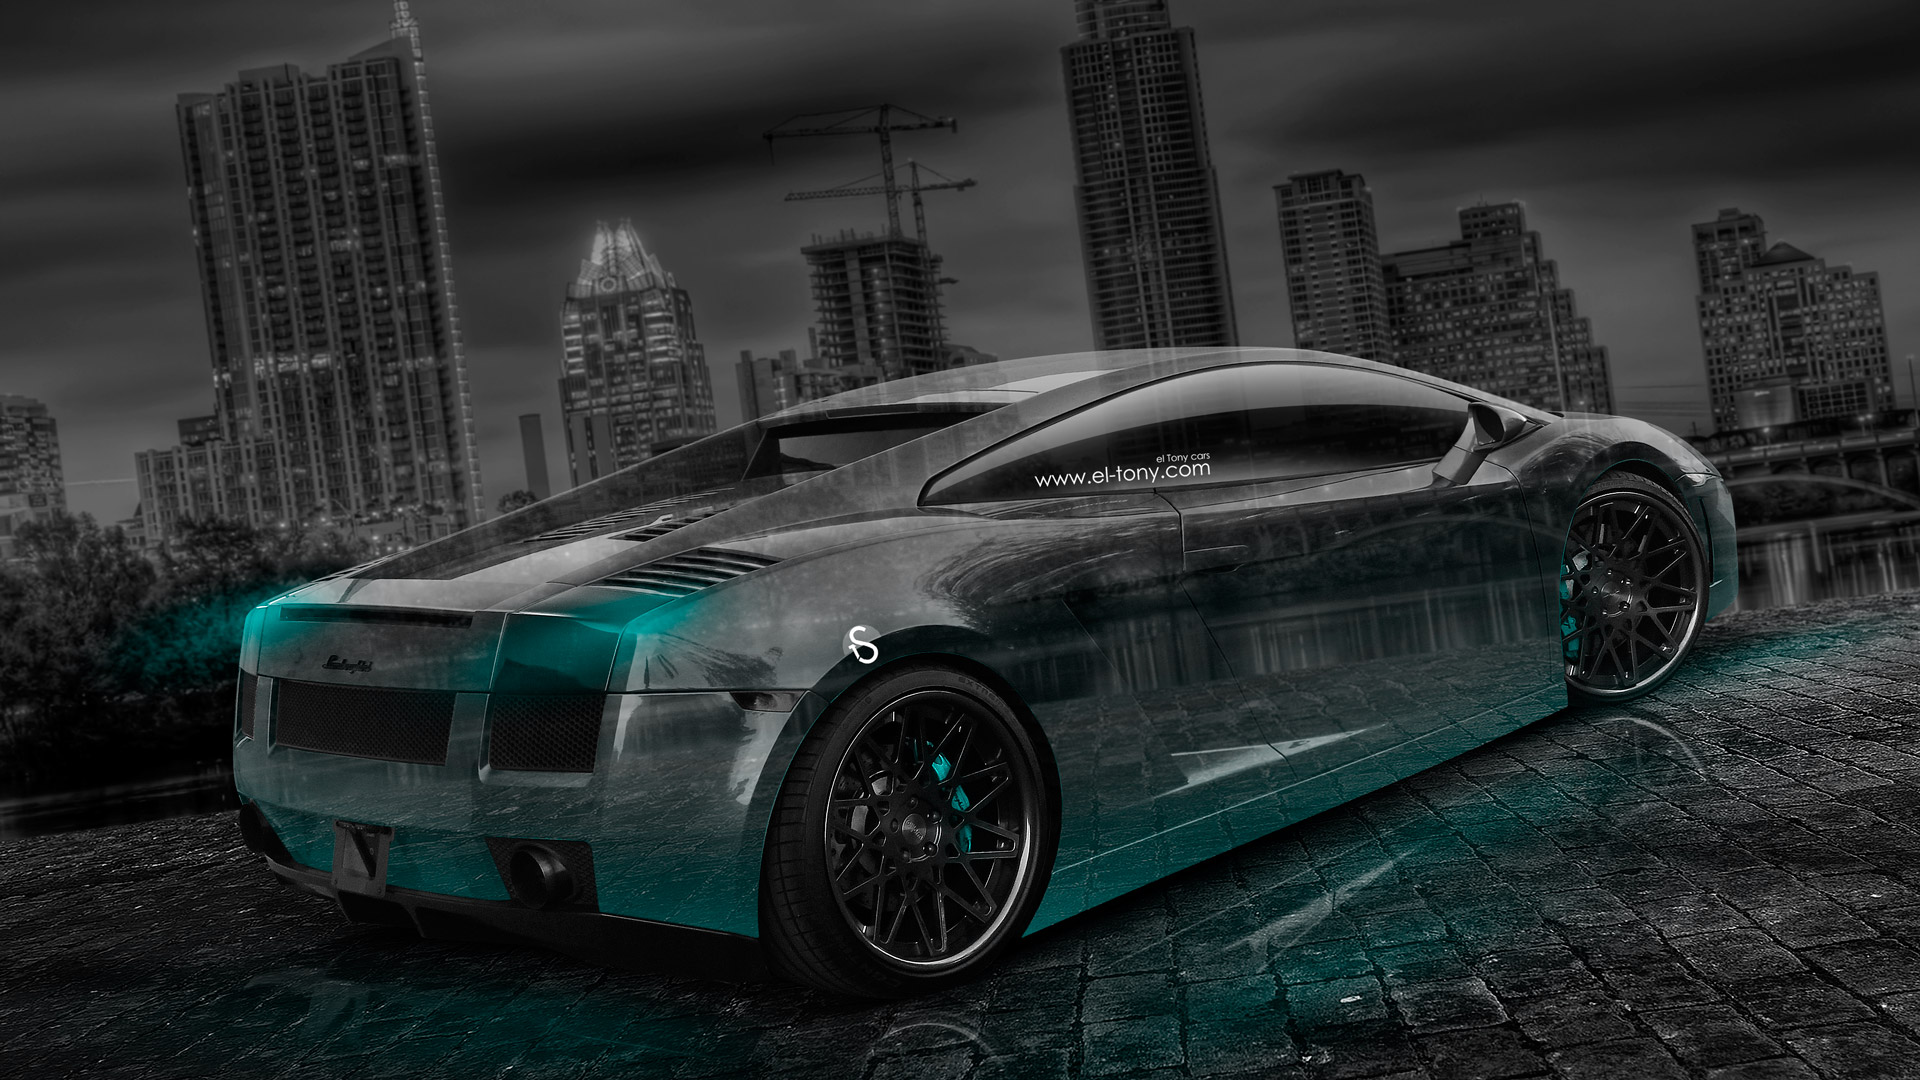 Beau ... Lamborghini Gallardo Crystal City Car 2014 Art Azure